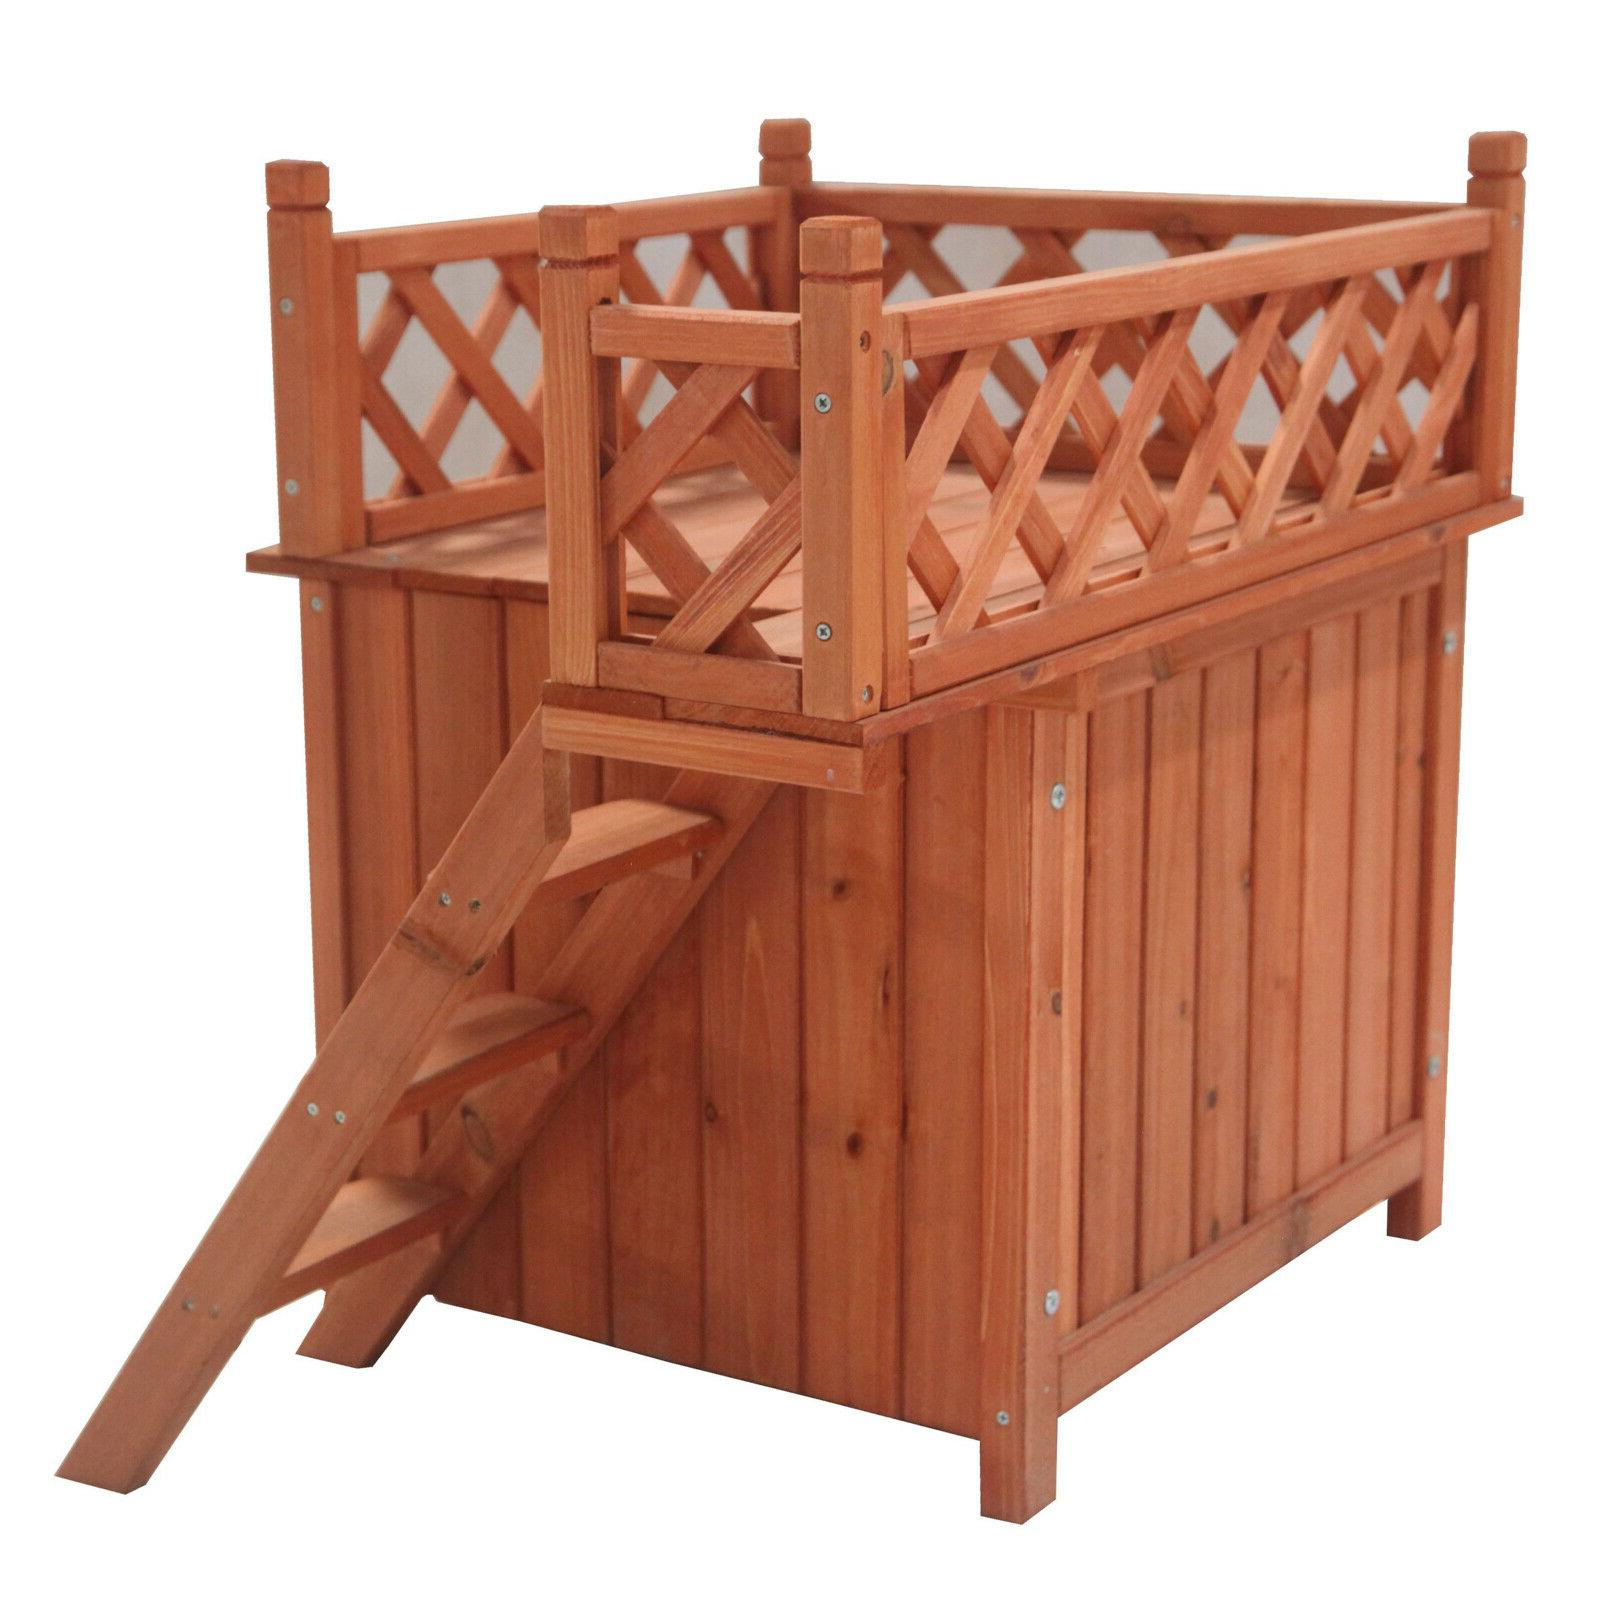 Cedar Kennel with Steps and Balcony - 28x20x25in Top Quality